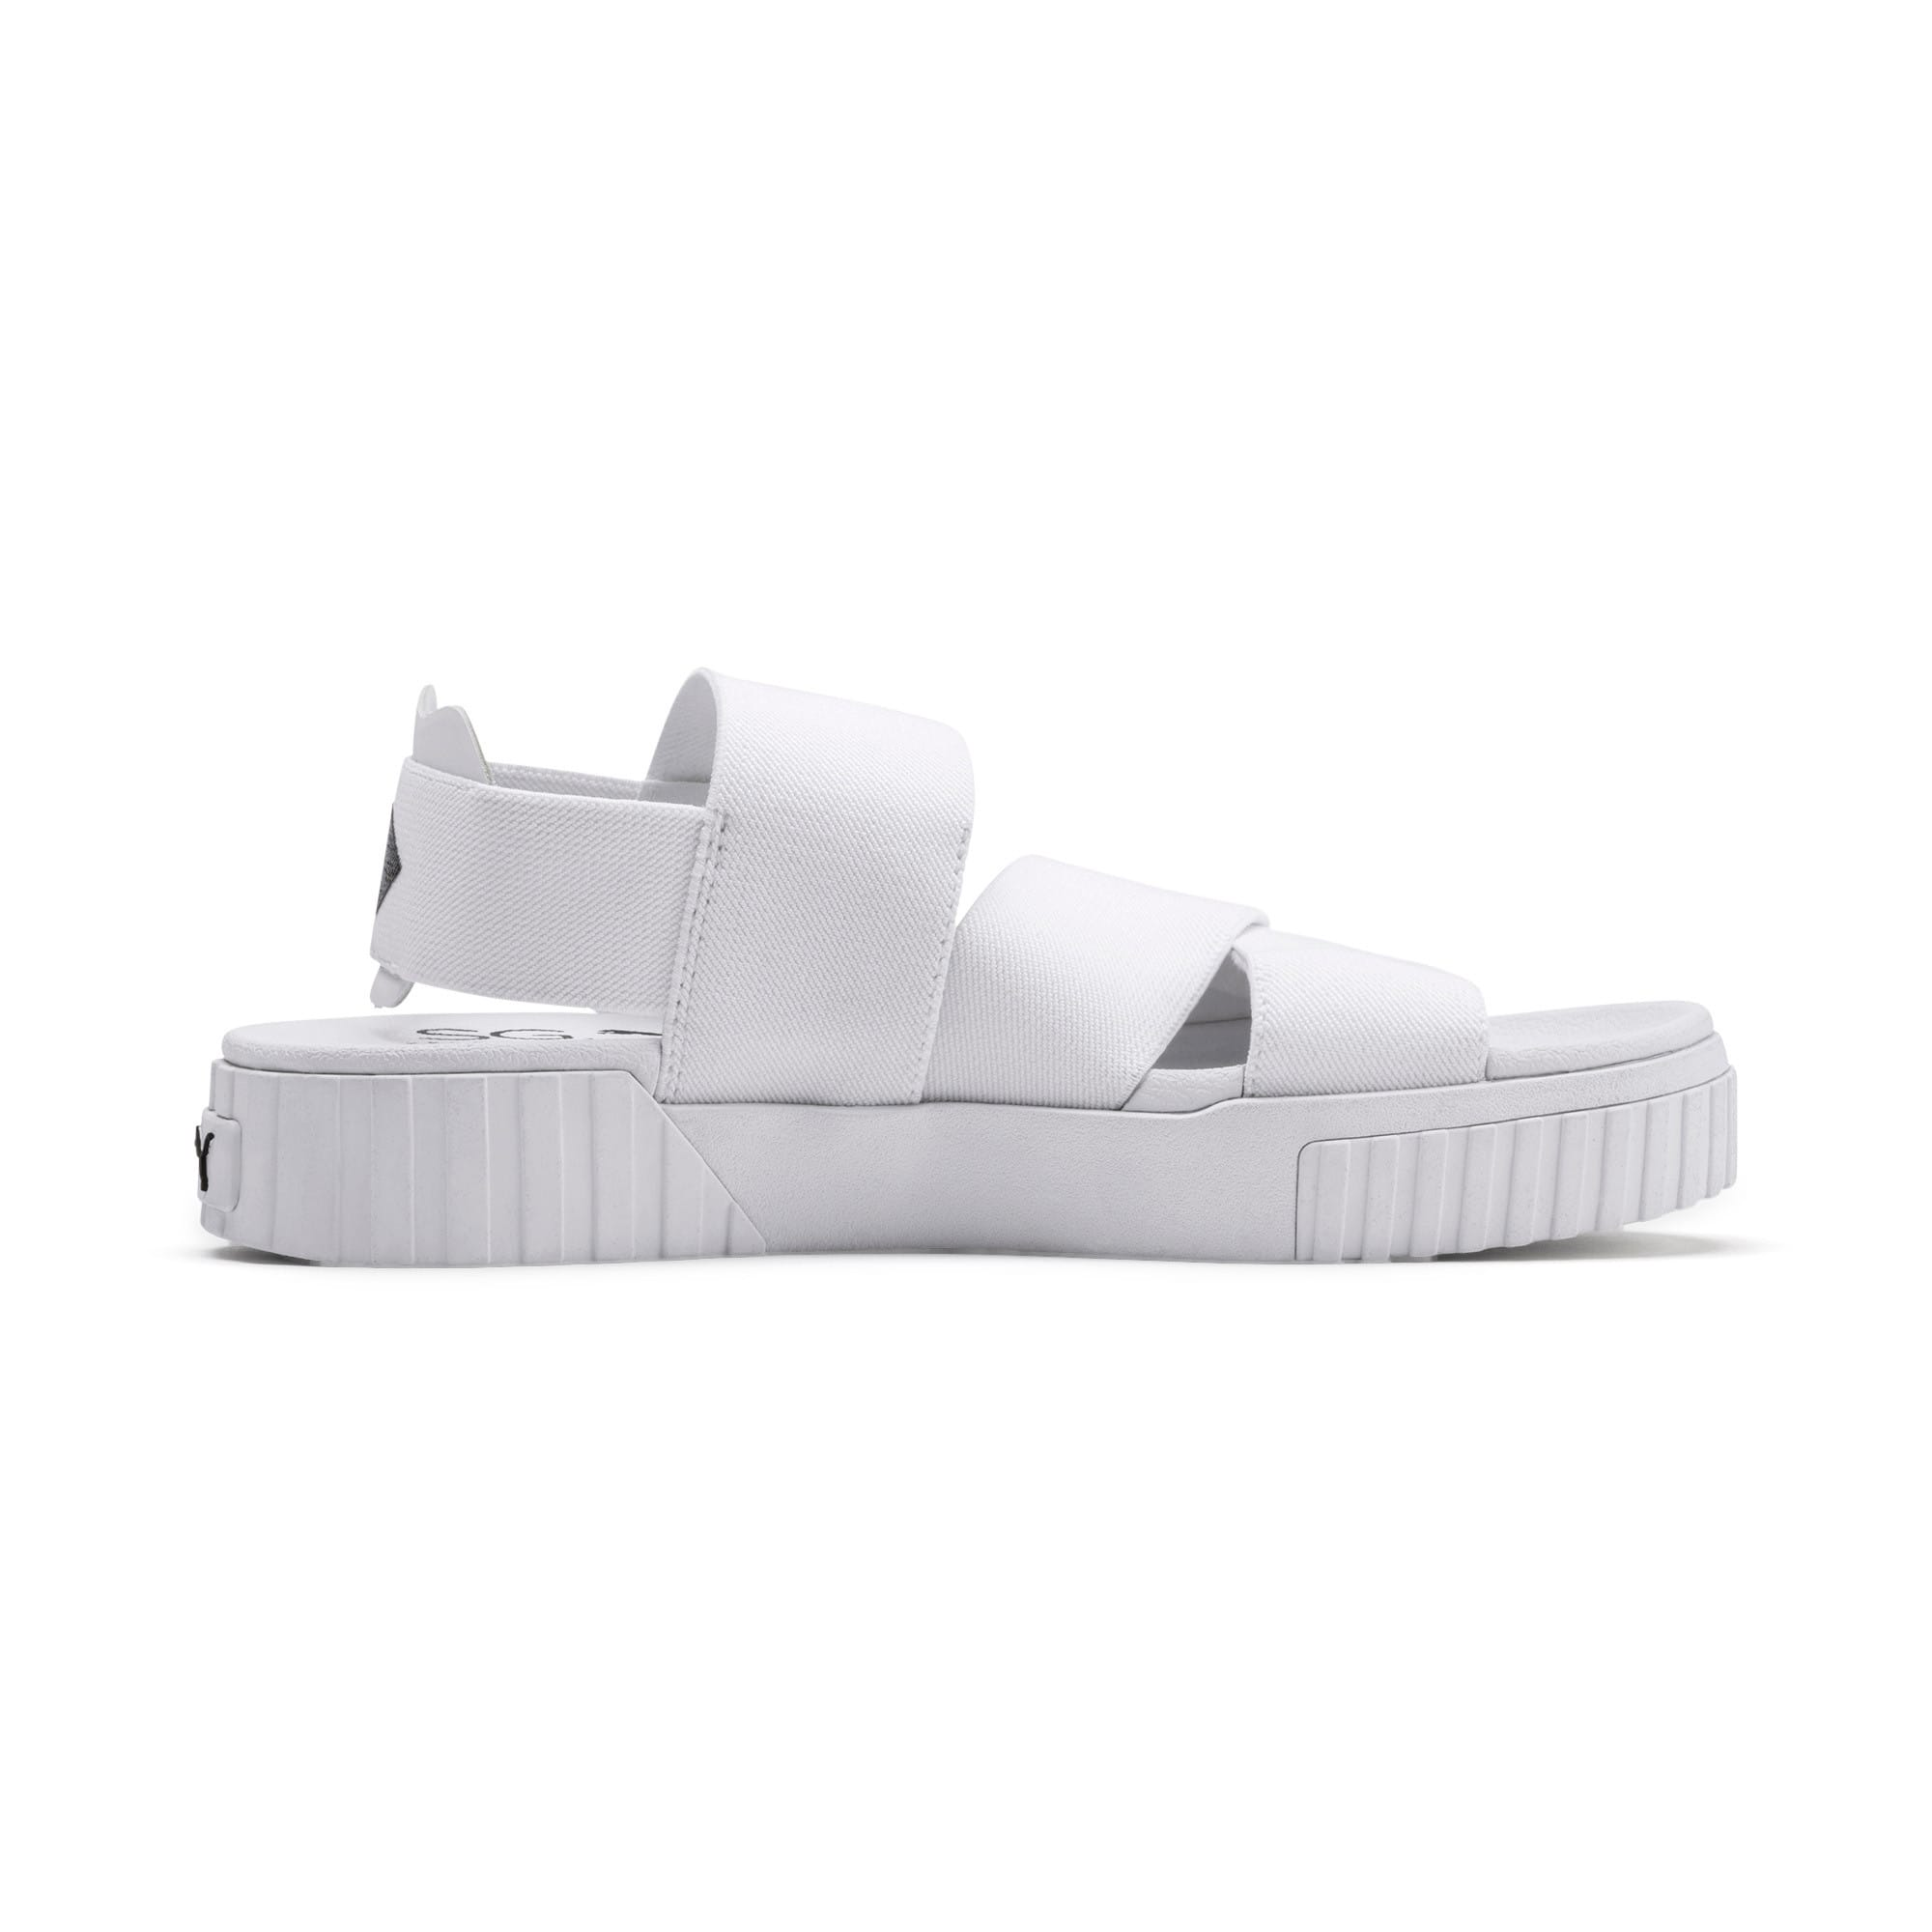 Thumbnail 6 of PUMA x SELENA GOMEZ Cali Damen Sandalen, Puma White, medium